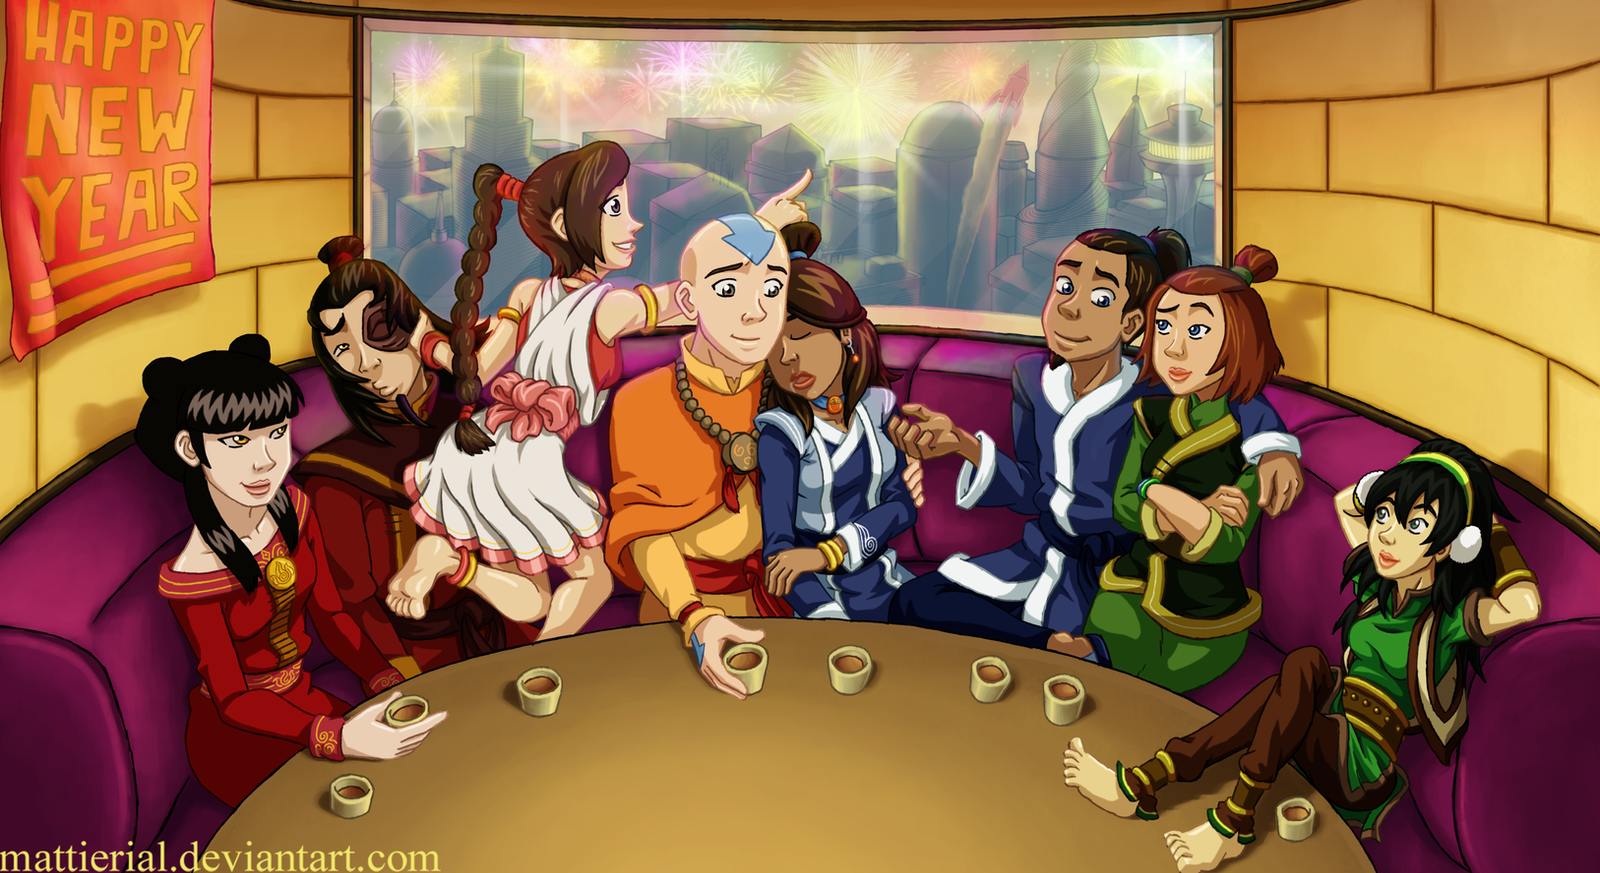 Avatar: HAPPY NEW YEAR by Mattierial